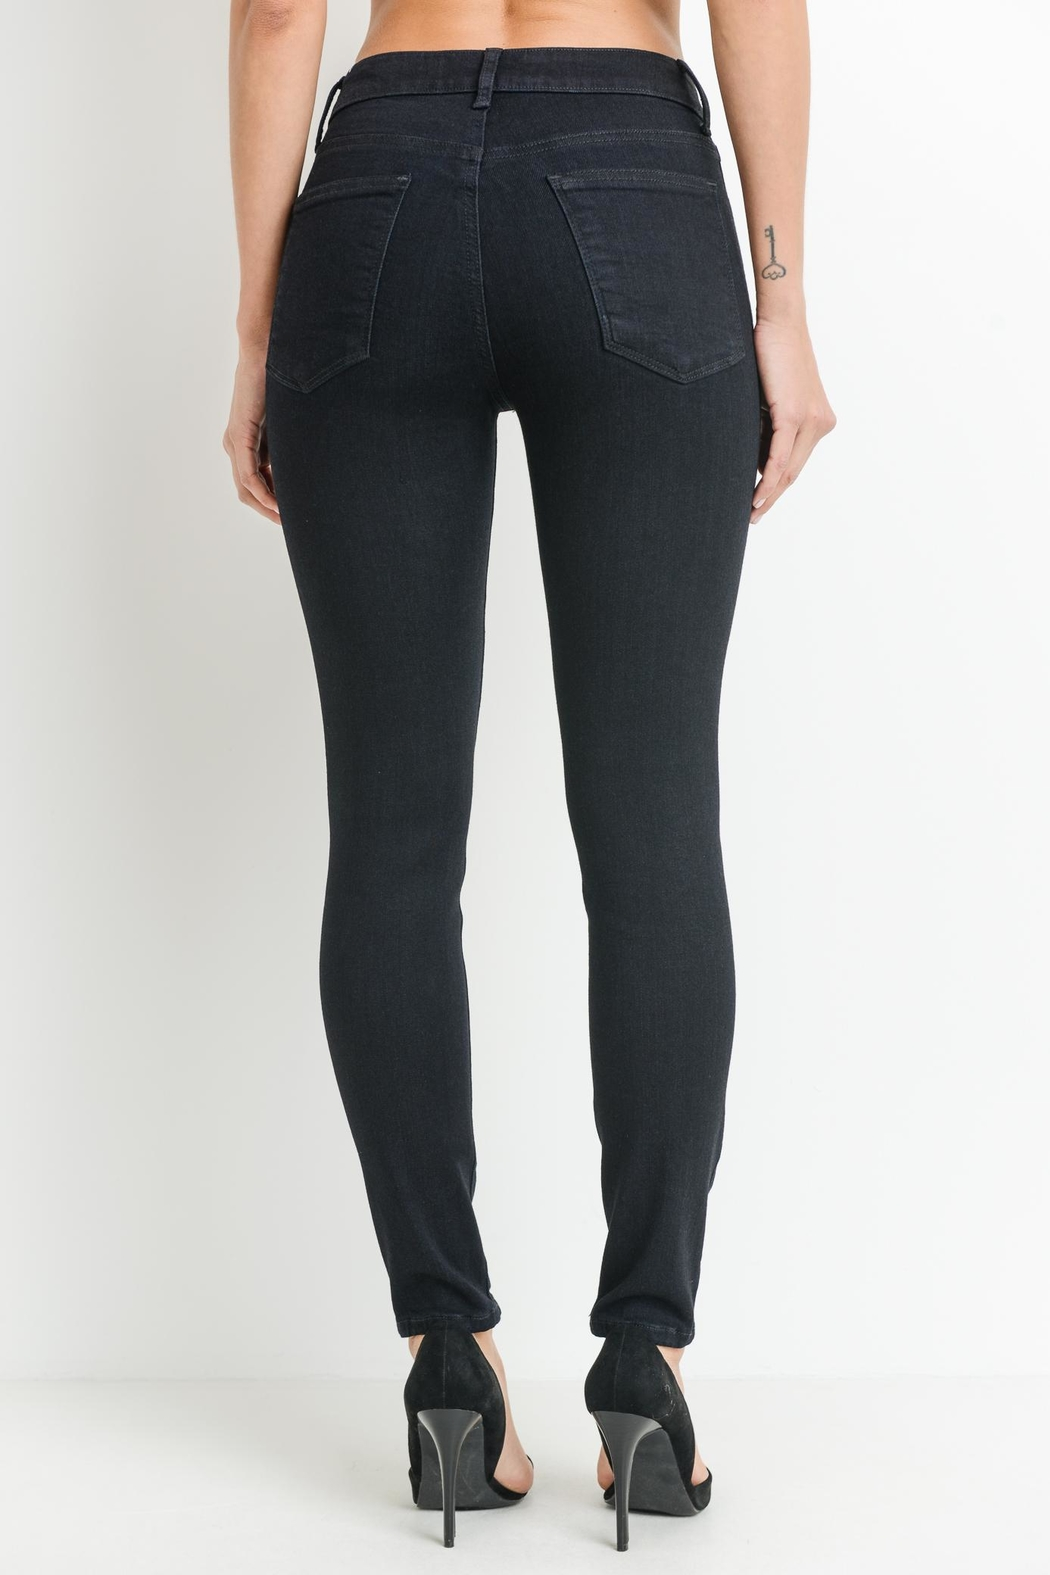 just black Dark Denim Jeans - Side Cropped Image